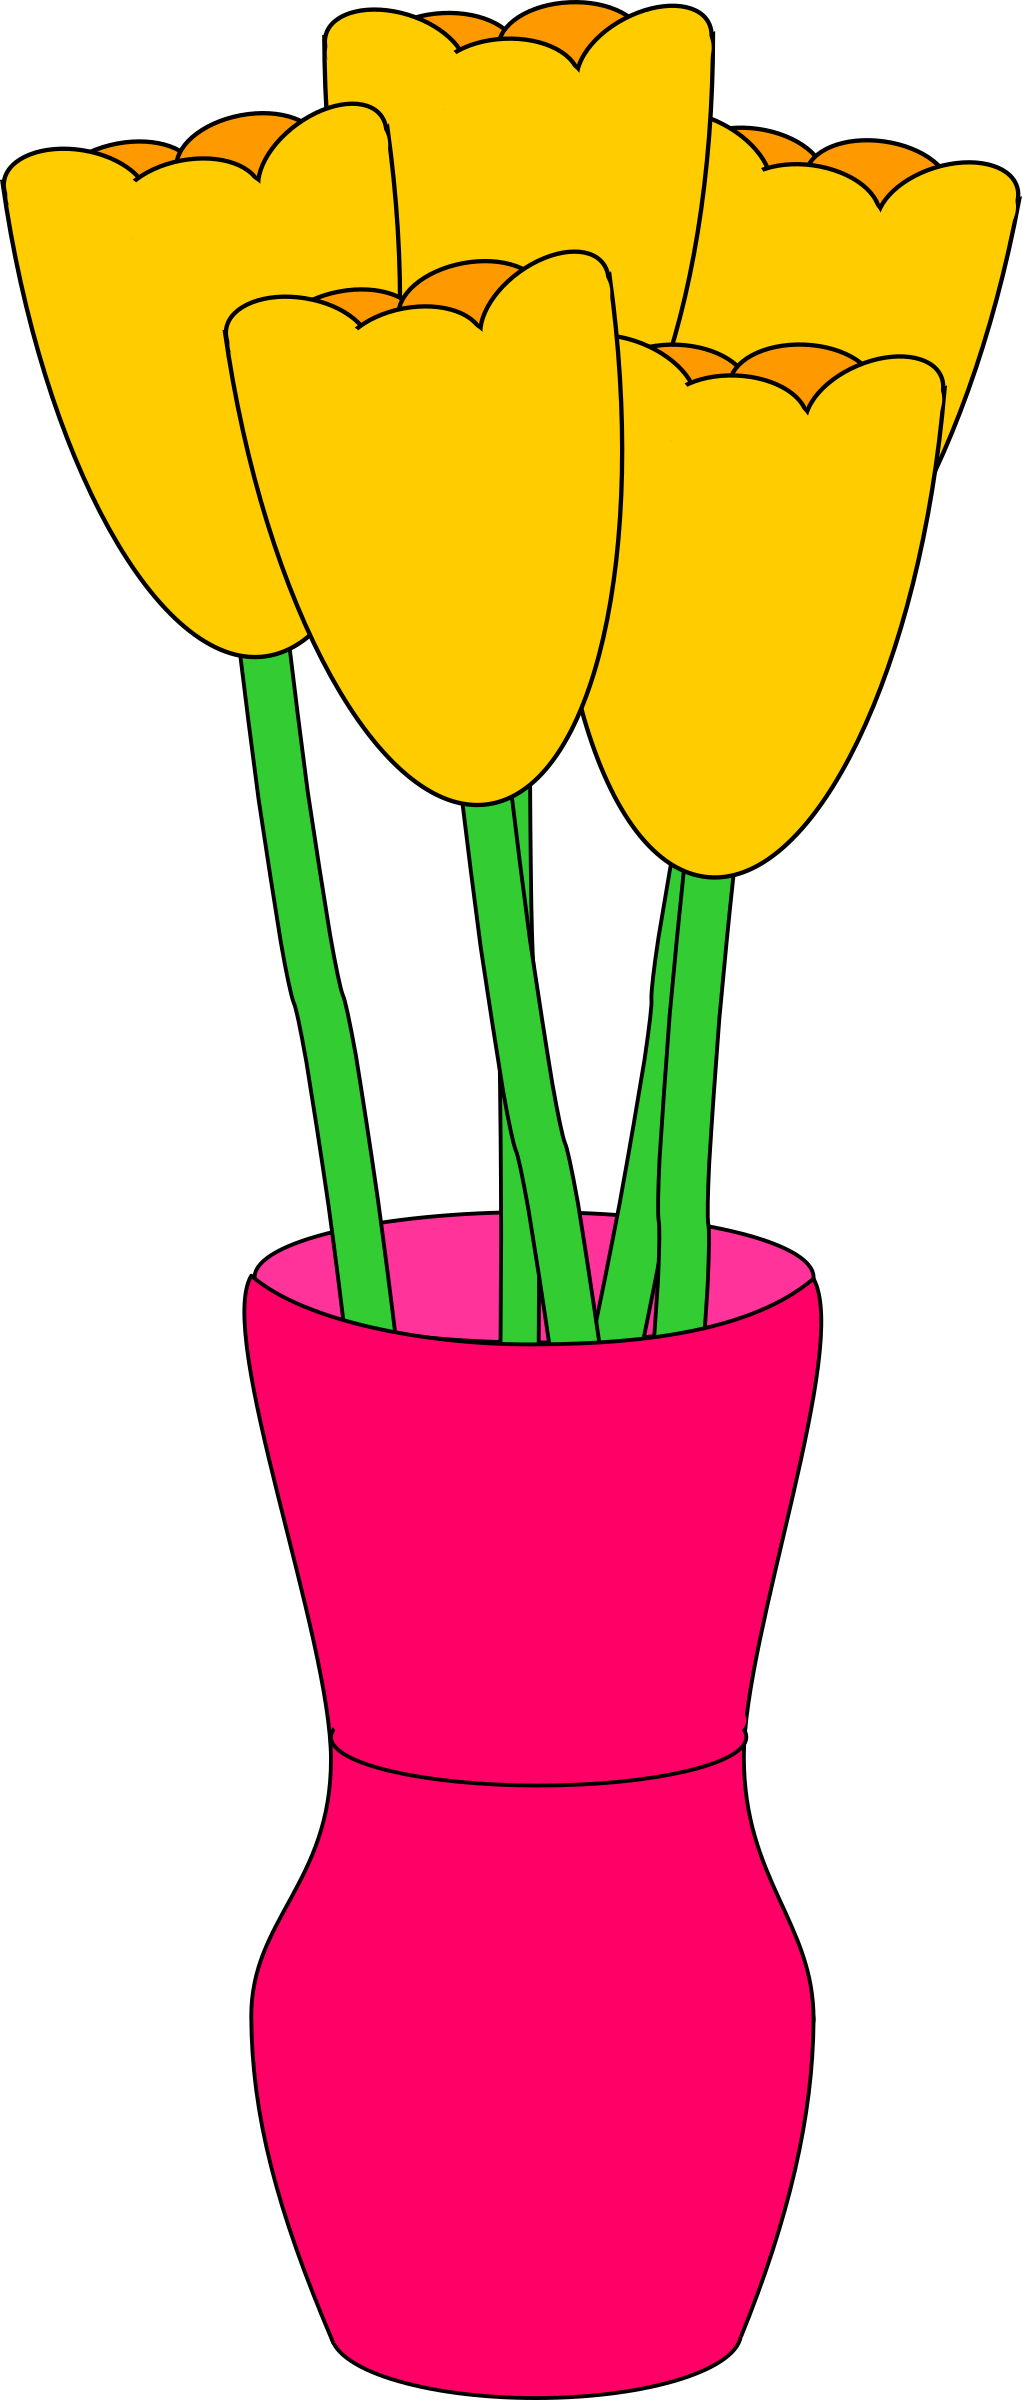 Pink vase of tulips by barnheartowl